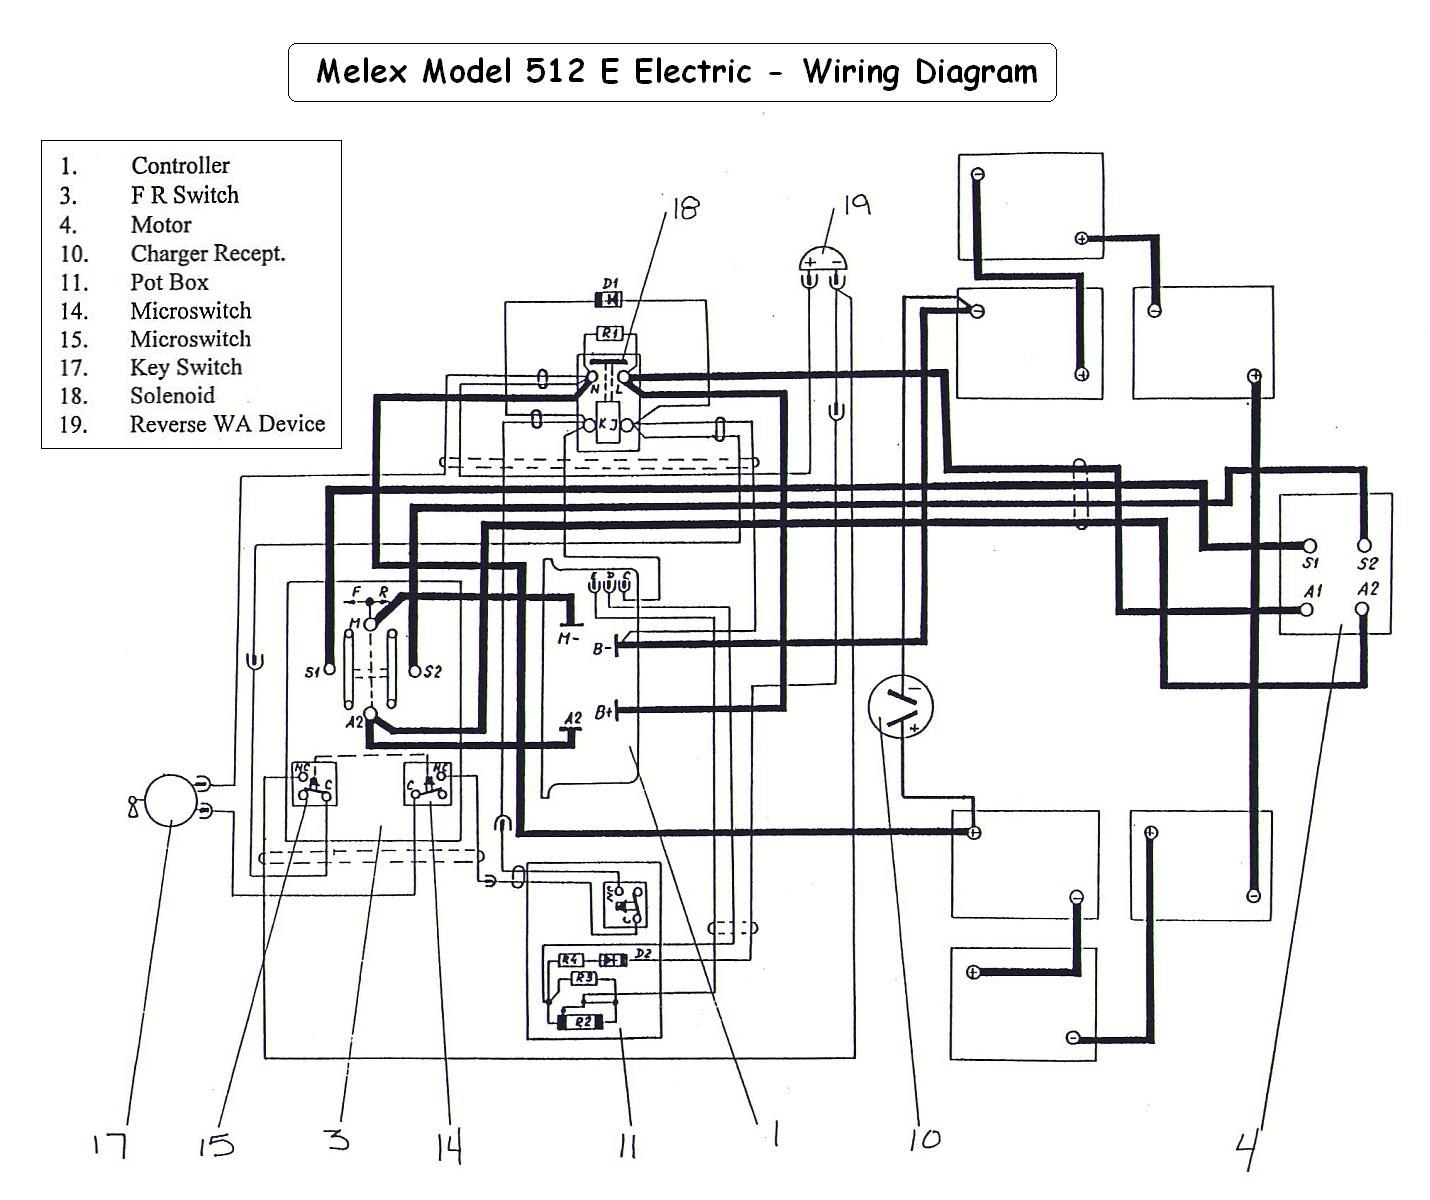 volvo truck wiring diagram pdf with Gallery on 2009 Mack Fuse Box Diagram likewise P 0996b43f80394eaa likewise Gallery furthermore 1993 Kenworth T600 Cab Wiring Diagram also Honda Cb750 Sohc Engine Diagram.